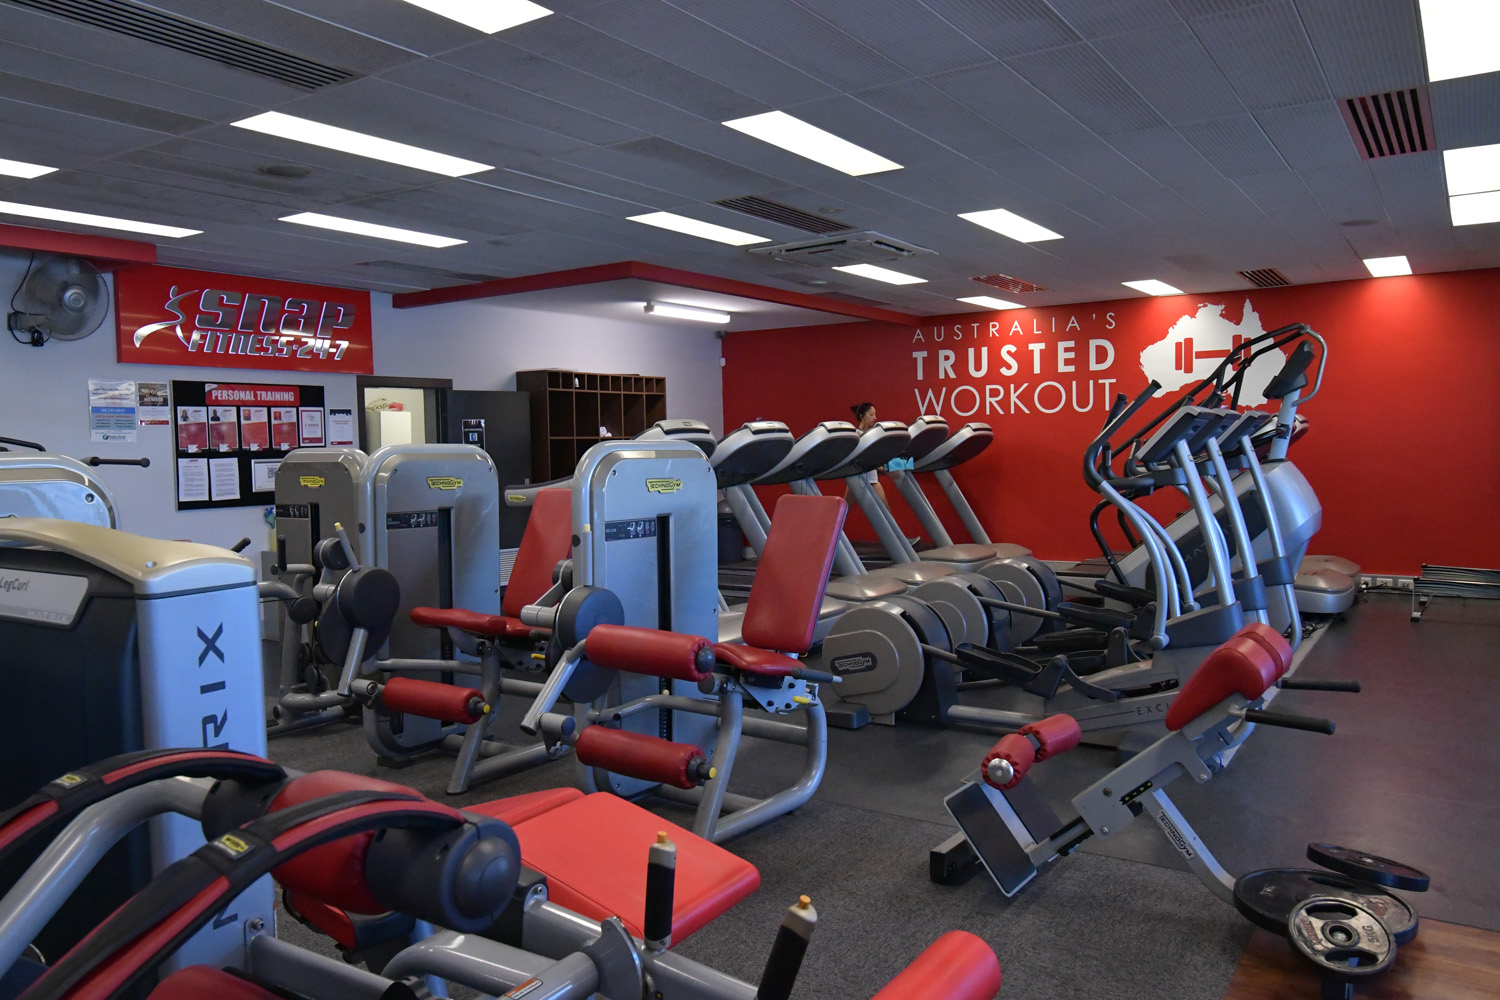 Cancel snap fitness membership australia